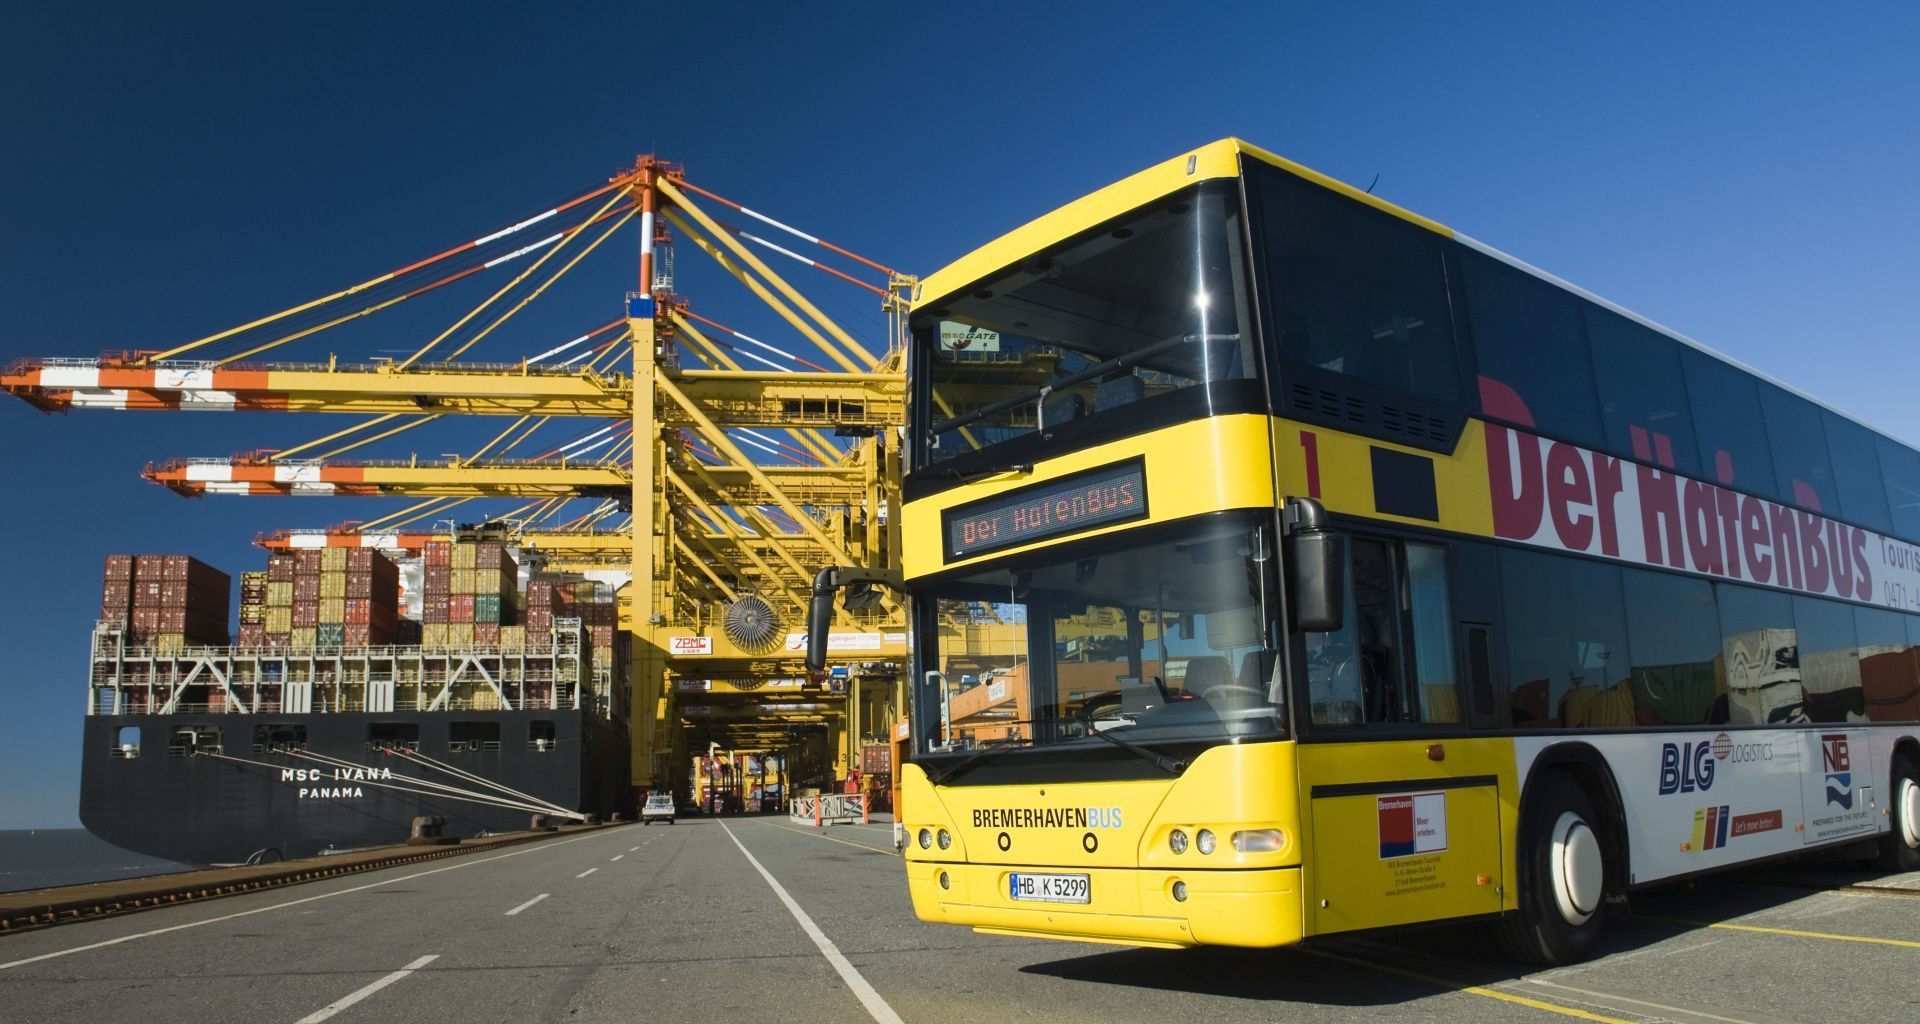 A bus stands in front of container bridges.